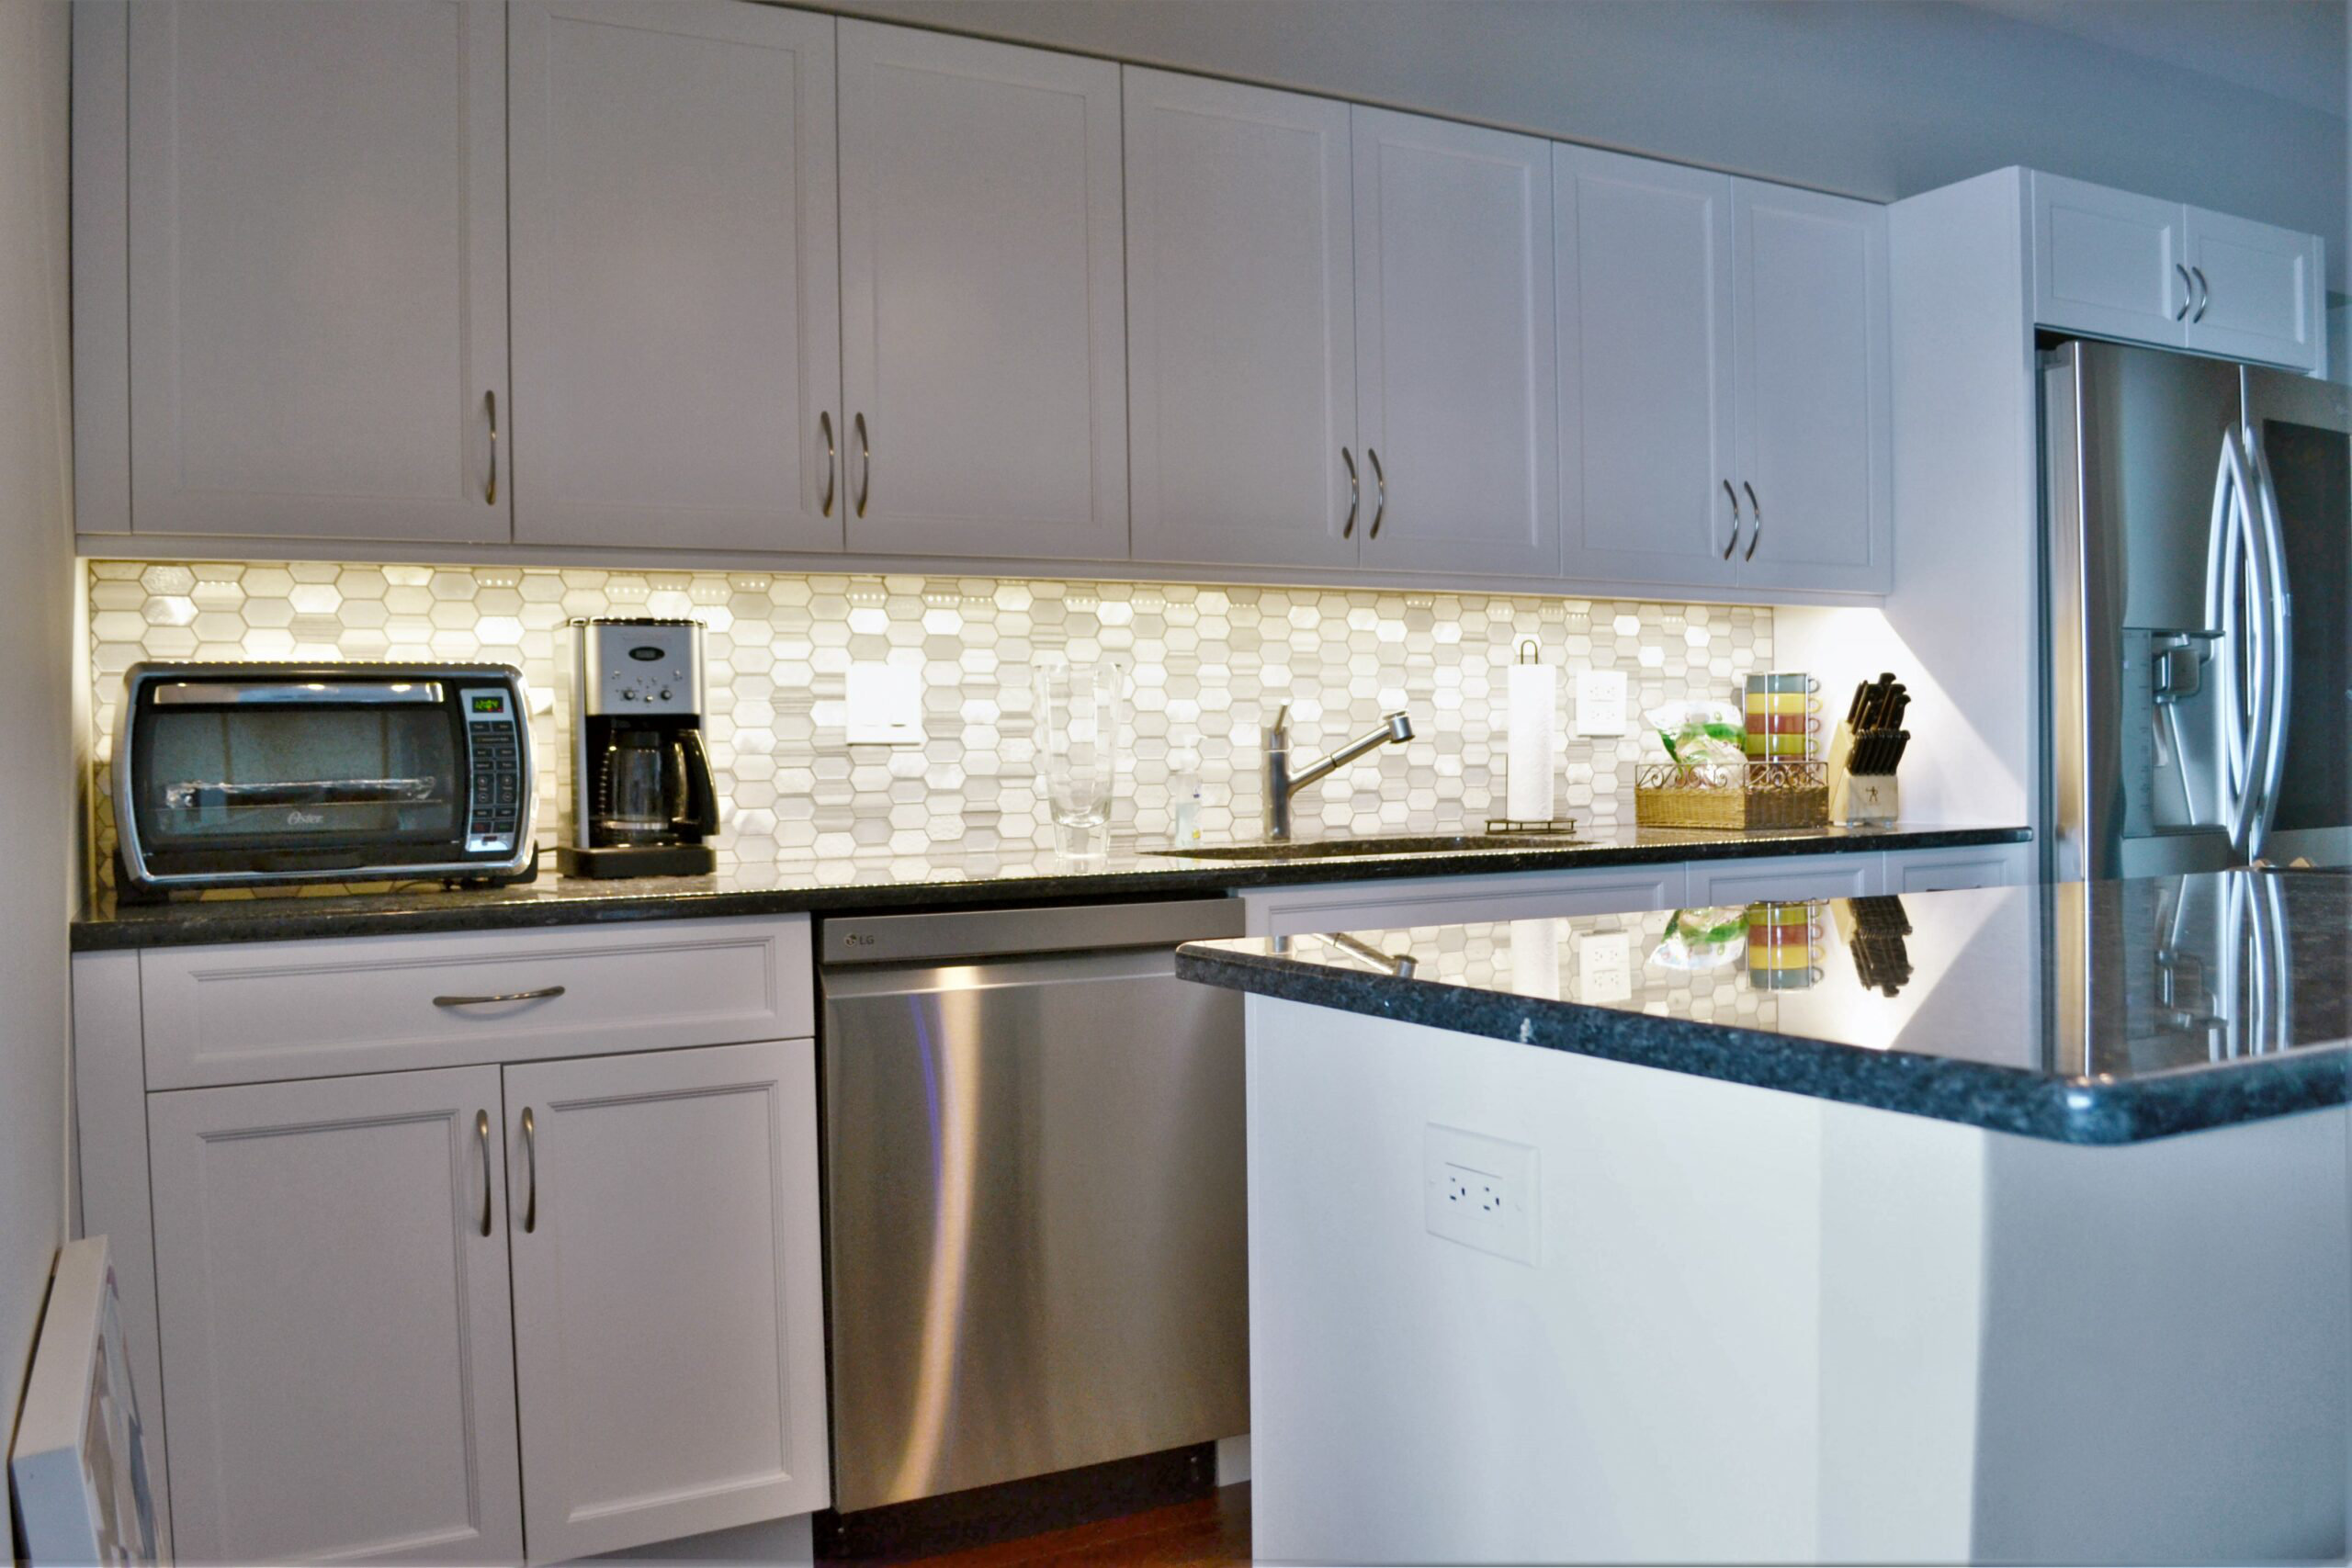 Chicago Lake Shore Condo Transitional White Kitchen Remodel